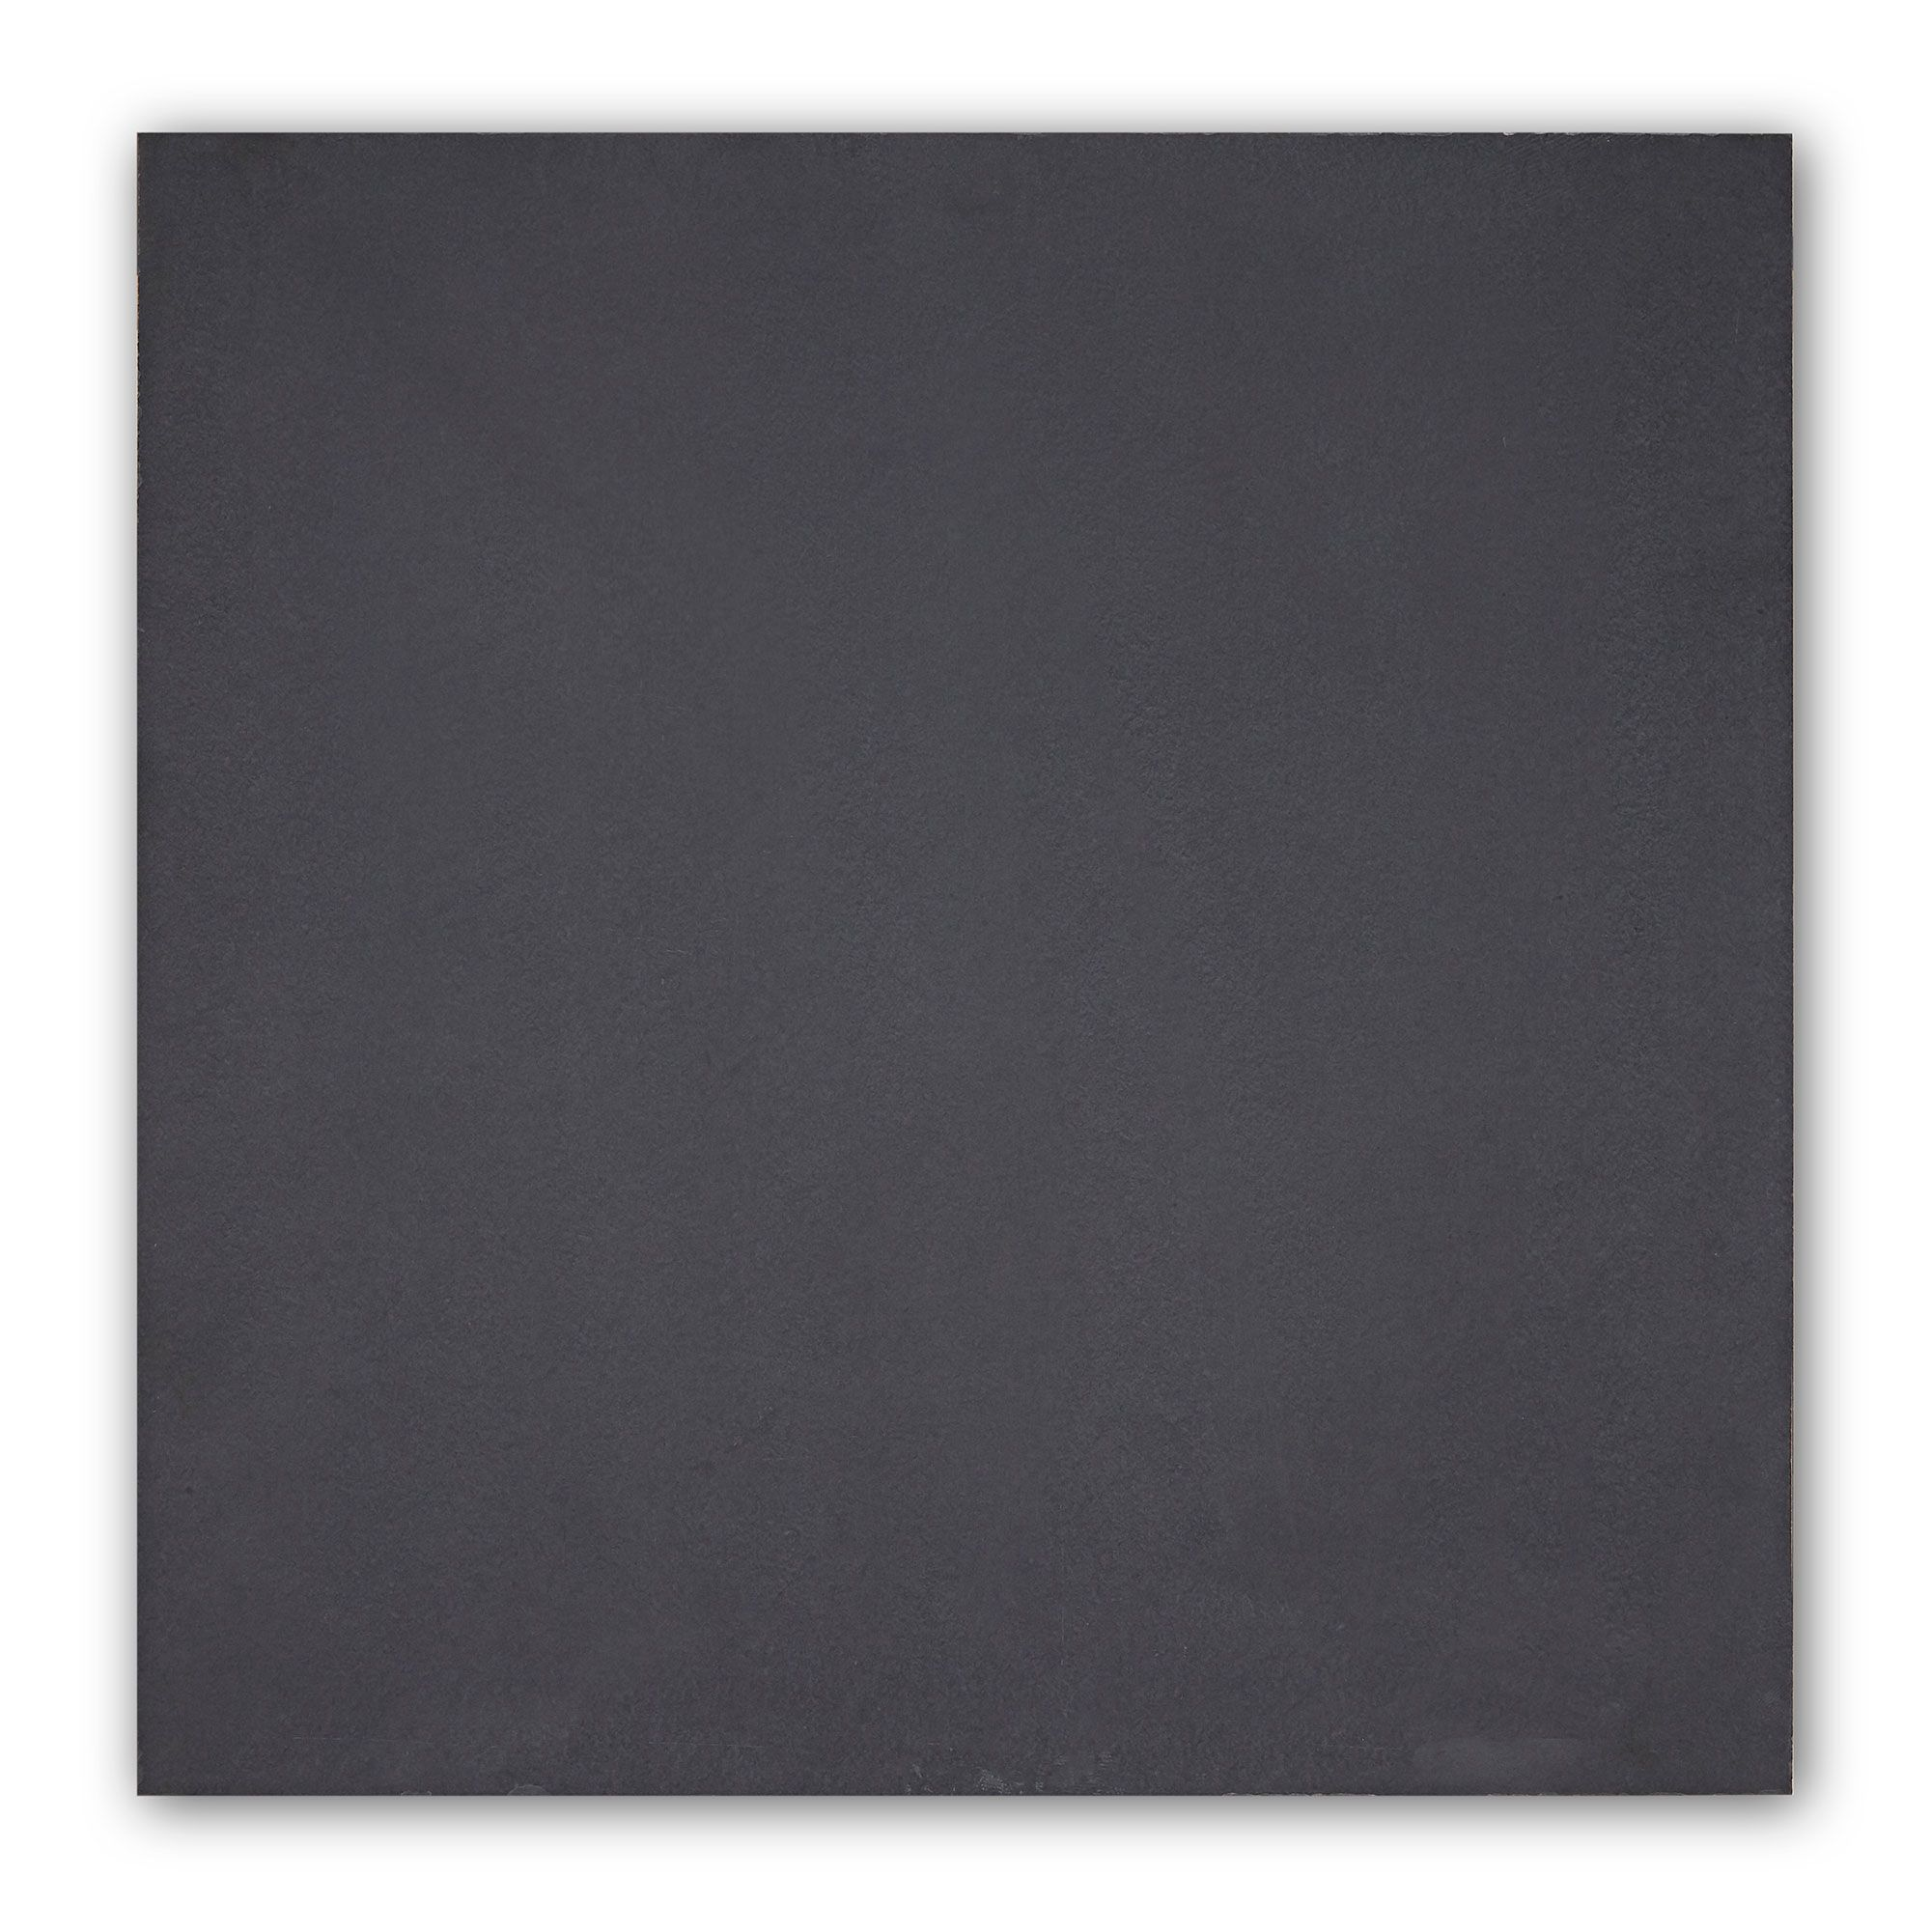 Urban Slate 60x60 Black/Grey